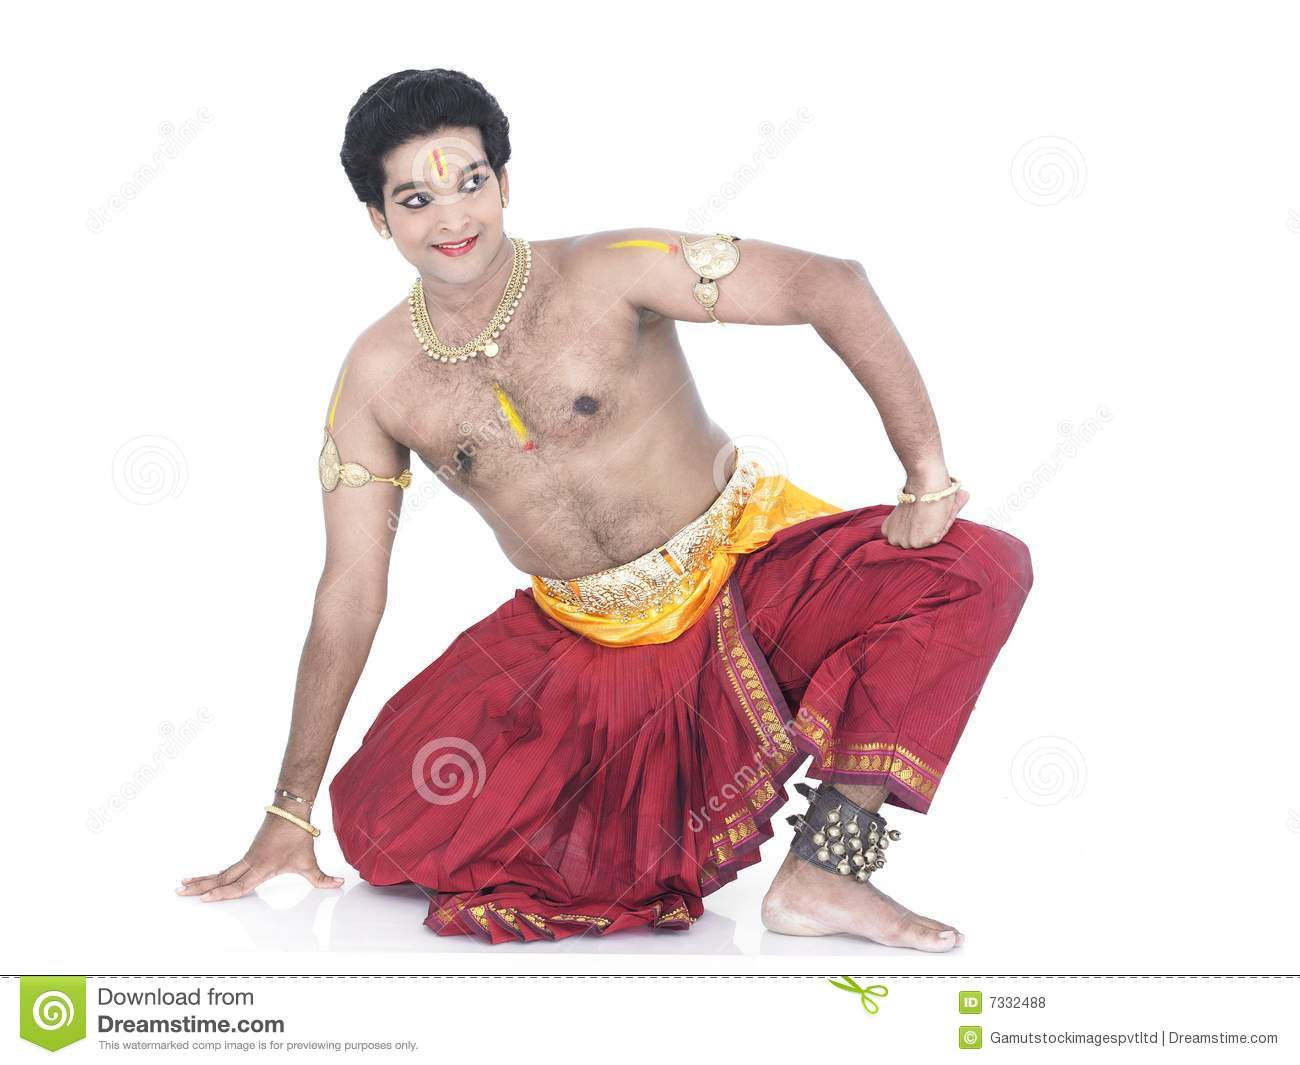 Indian Traditional Male Dancer Royalty Free Stock Photos. Army Rings. Diamond Around Engagement Rings. Georgia Tech Rings. Flyer Engagement Rings. Sculpted Engagement Rings. Flexible Wedding Rings. Shoulder Wedding Rings. Ct Round Engagement Rings